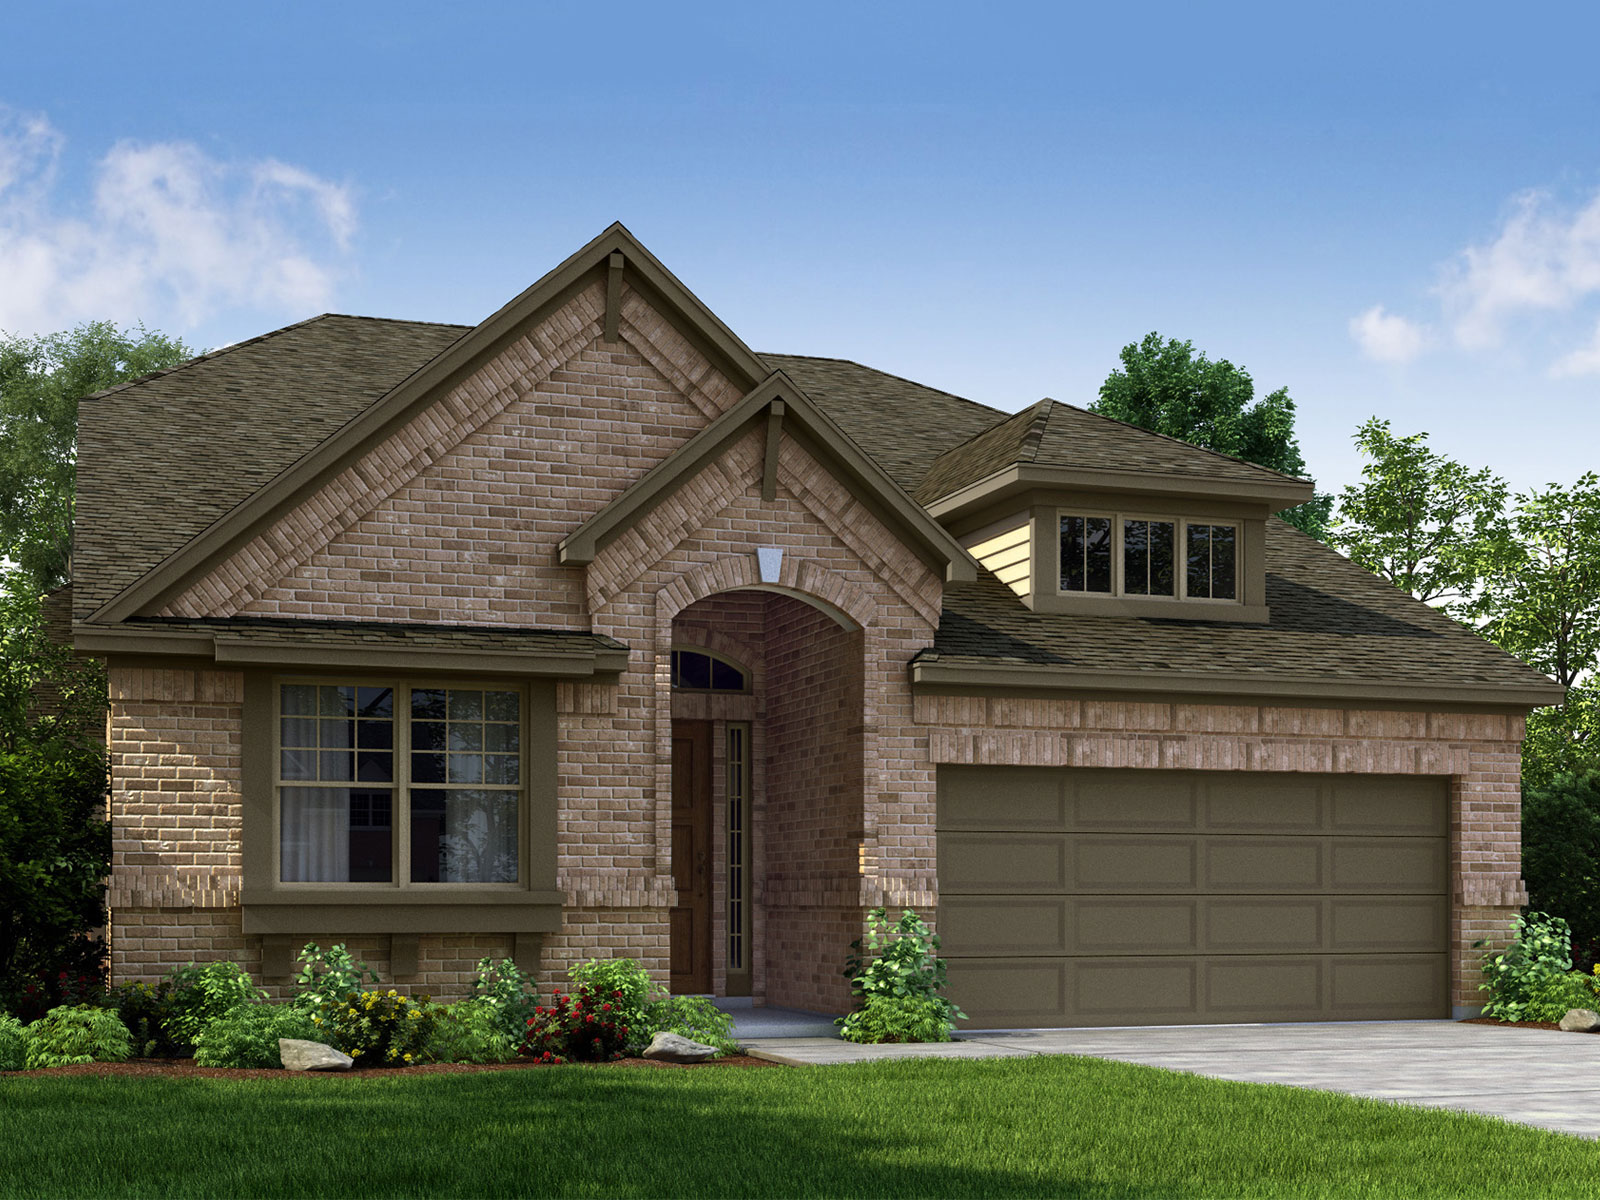 The sequoia 4023 model 3br 2ba homes for sale in for Houston house elevation